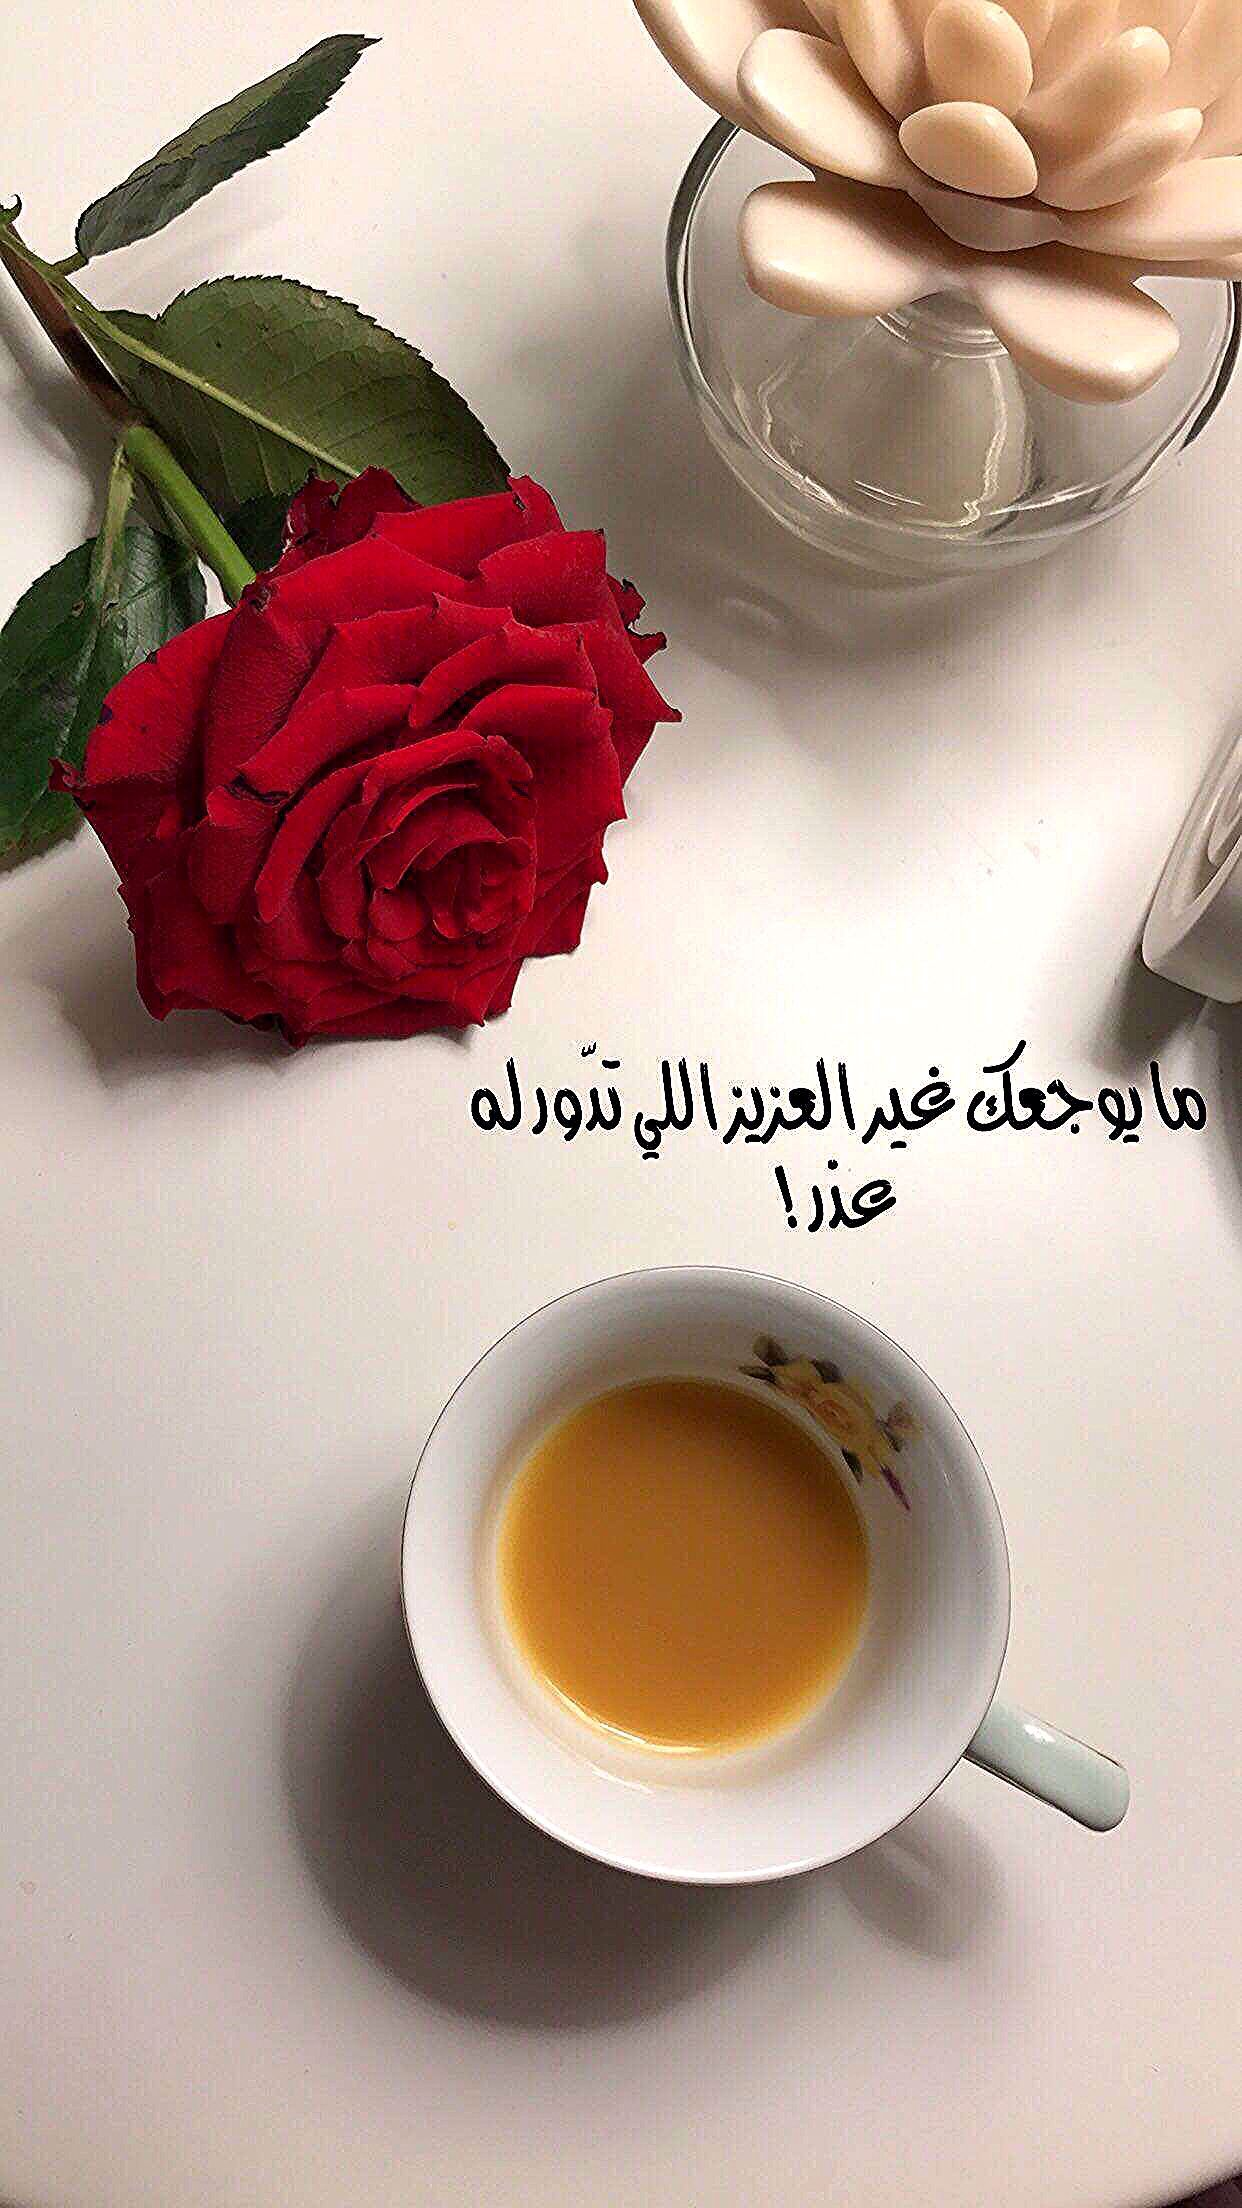 Pin By Courtney Kuphal On وردة حمراء Love Quotes Wallpaper Arabic Love Quotes Coffee Flower